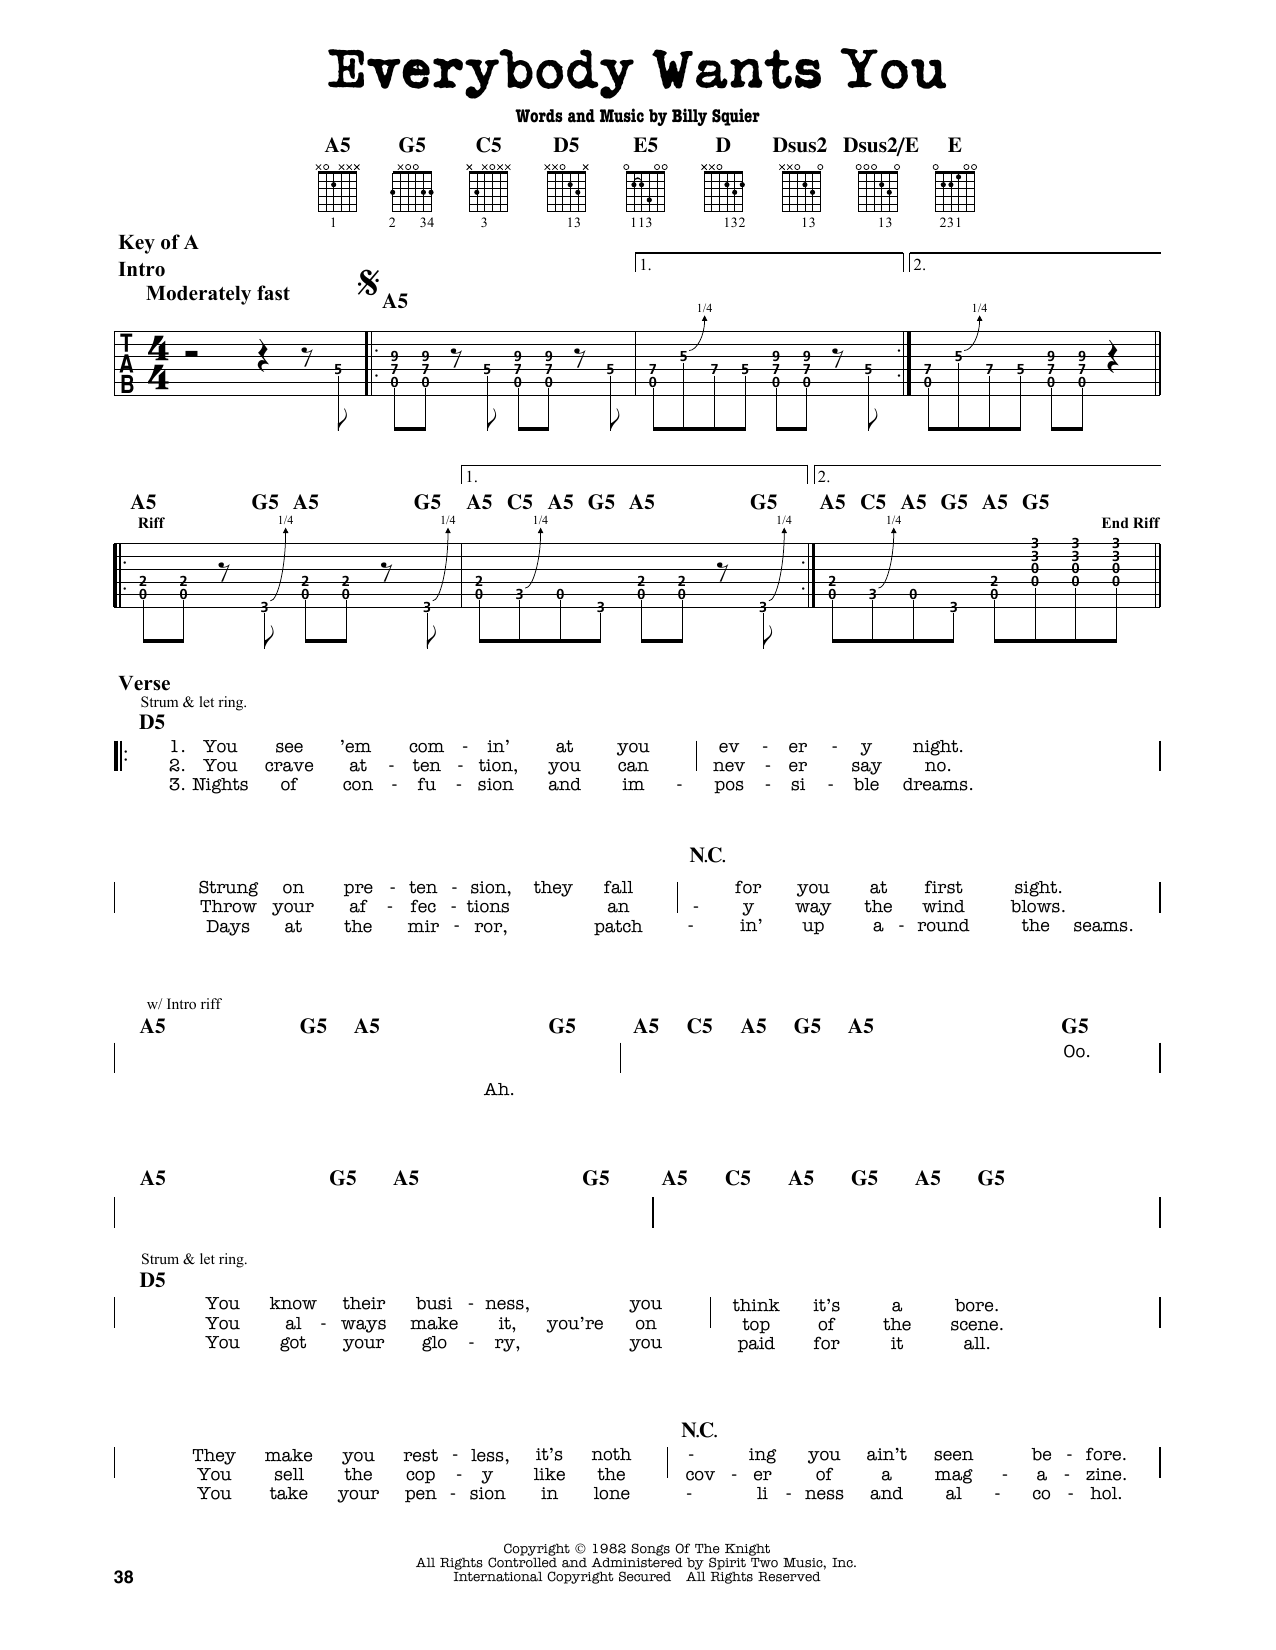 Billy Squier Everybody Wants You sheet music notes and chords. Download Printable PDF.